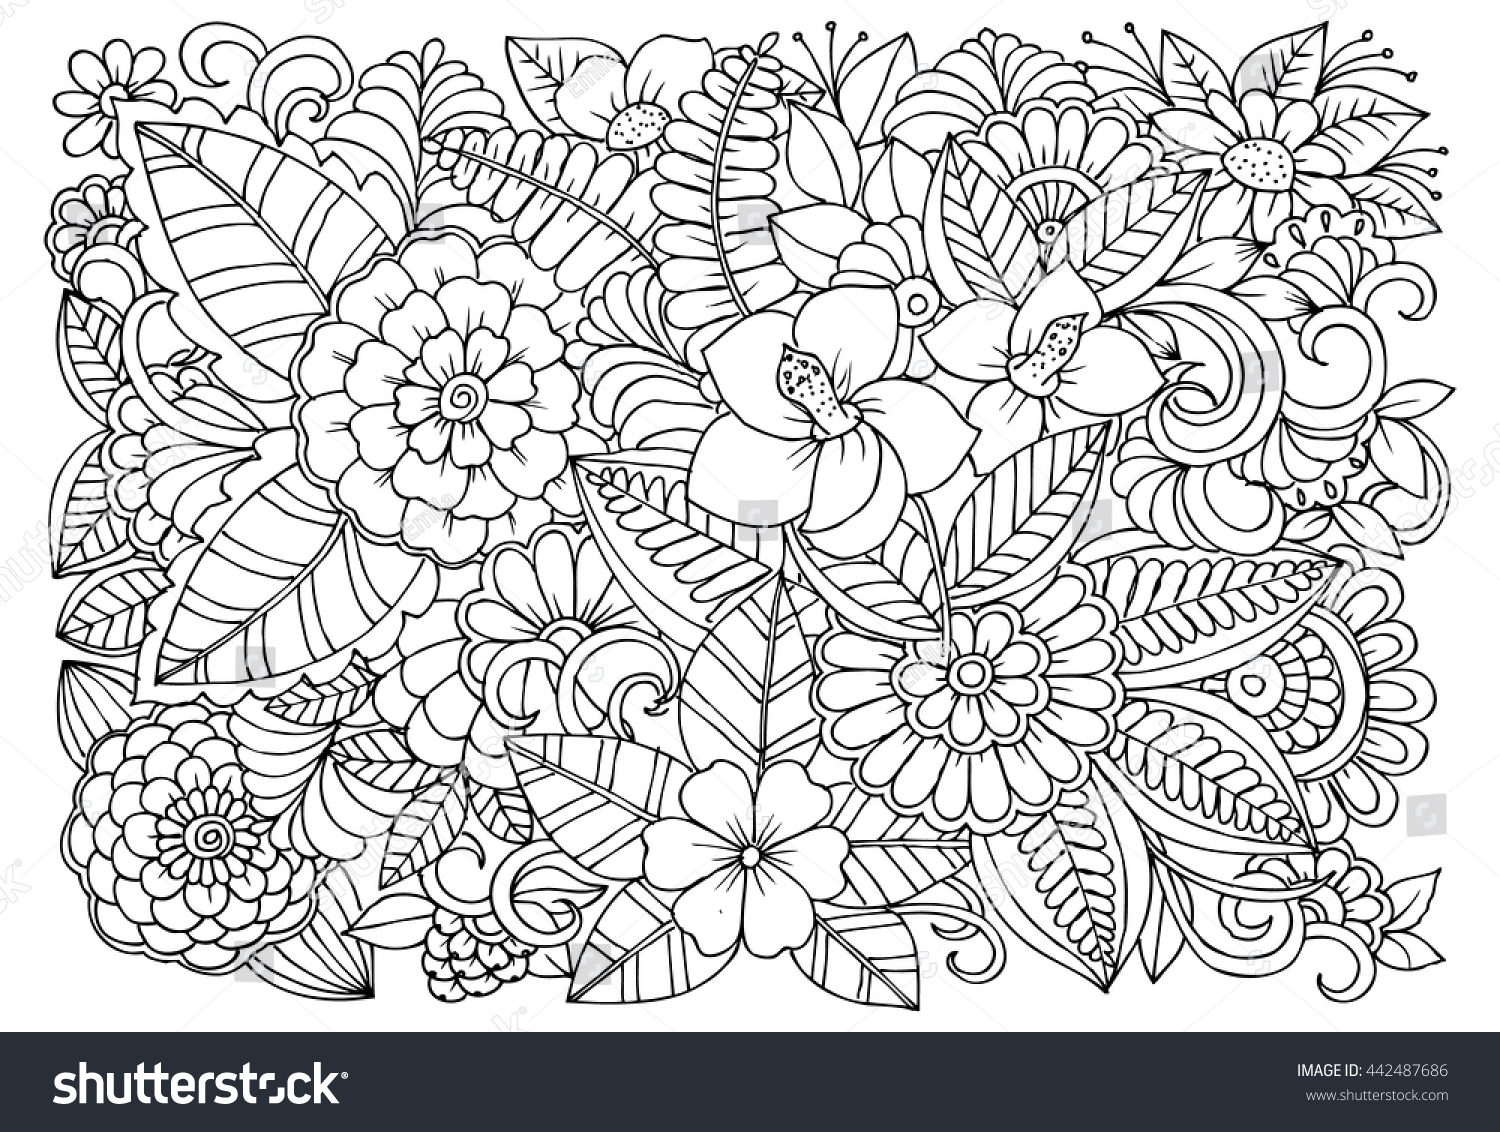 black white flower pattern coloring doodle stock vector 442487686